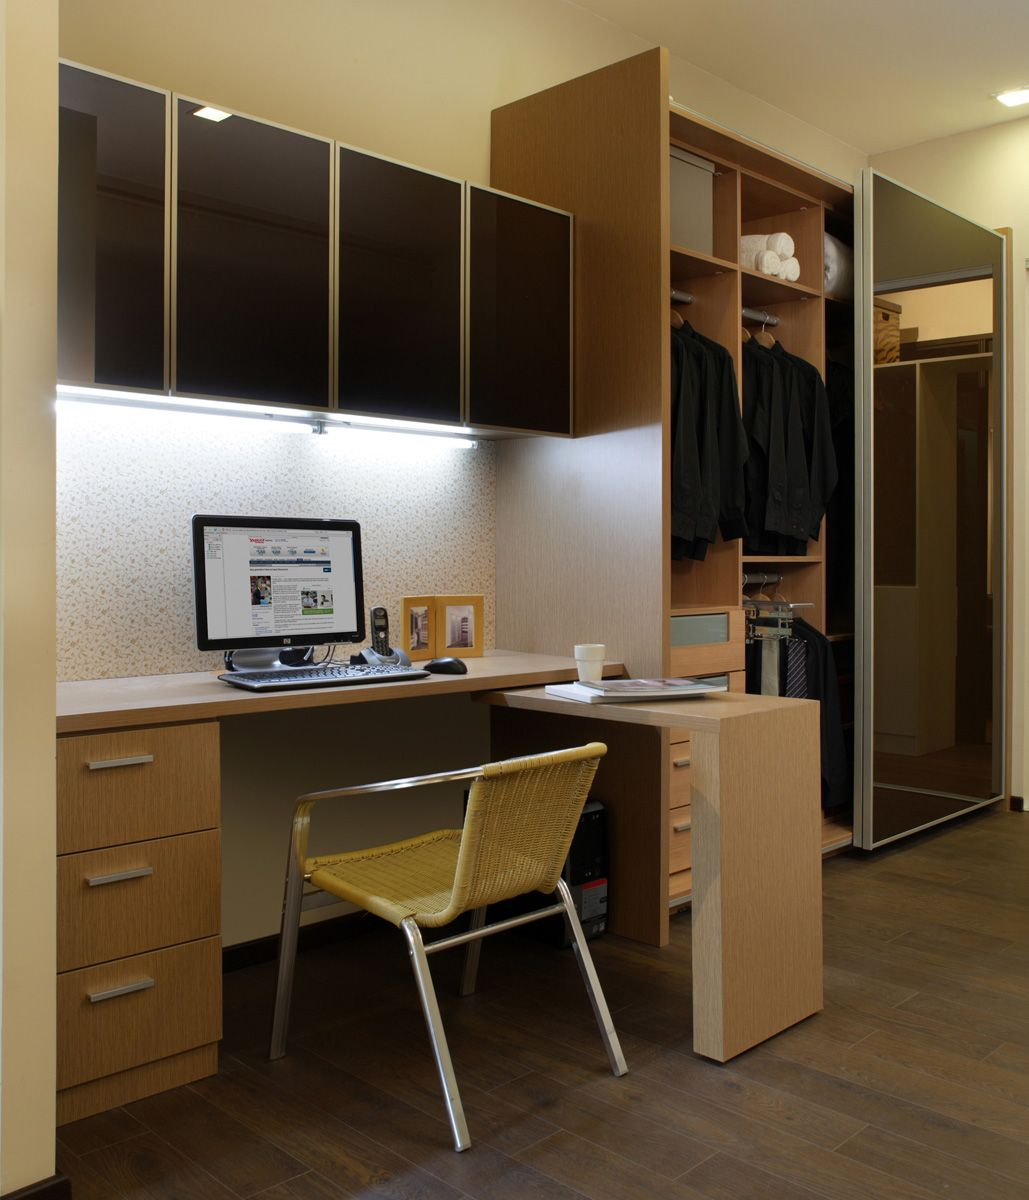 Kids Room Study Table: Study Table With Wall Cabinet & Wardrobe In 2019